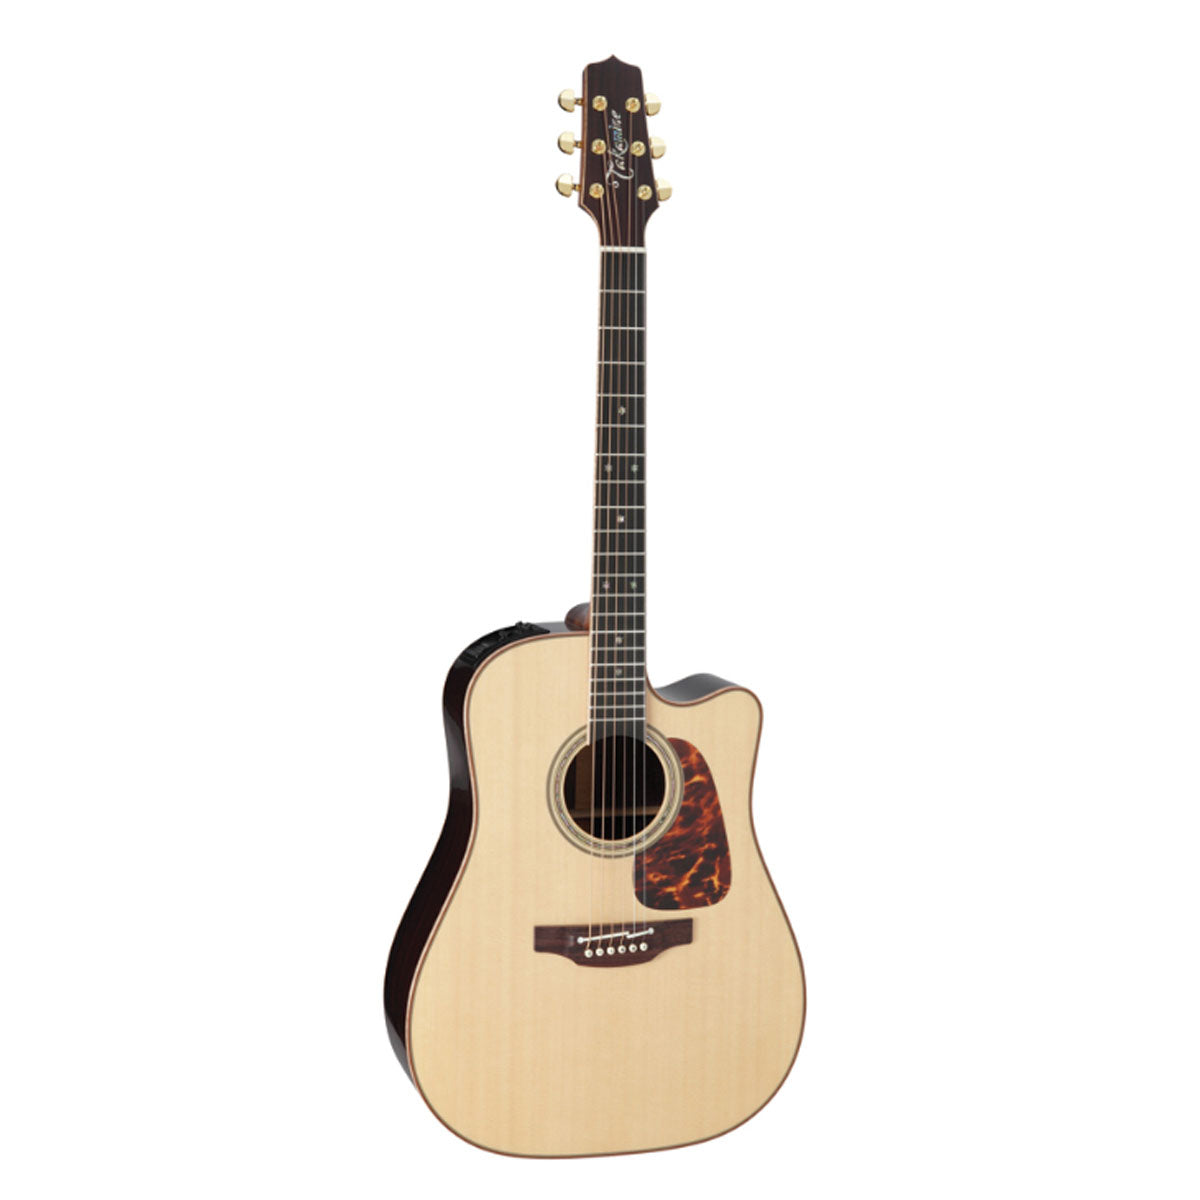 Takamine P7DC Pro Series 7 Acoustic Guitar Dreadnought Natural w/ Pickup